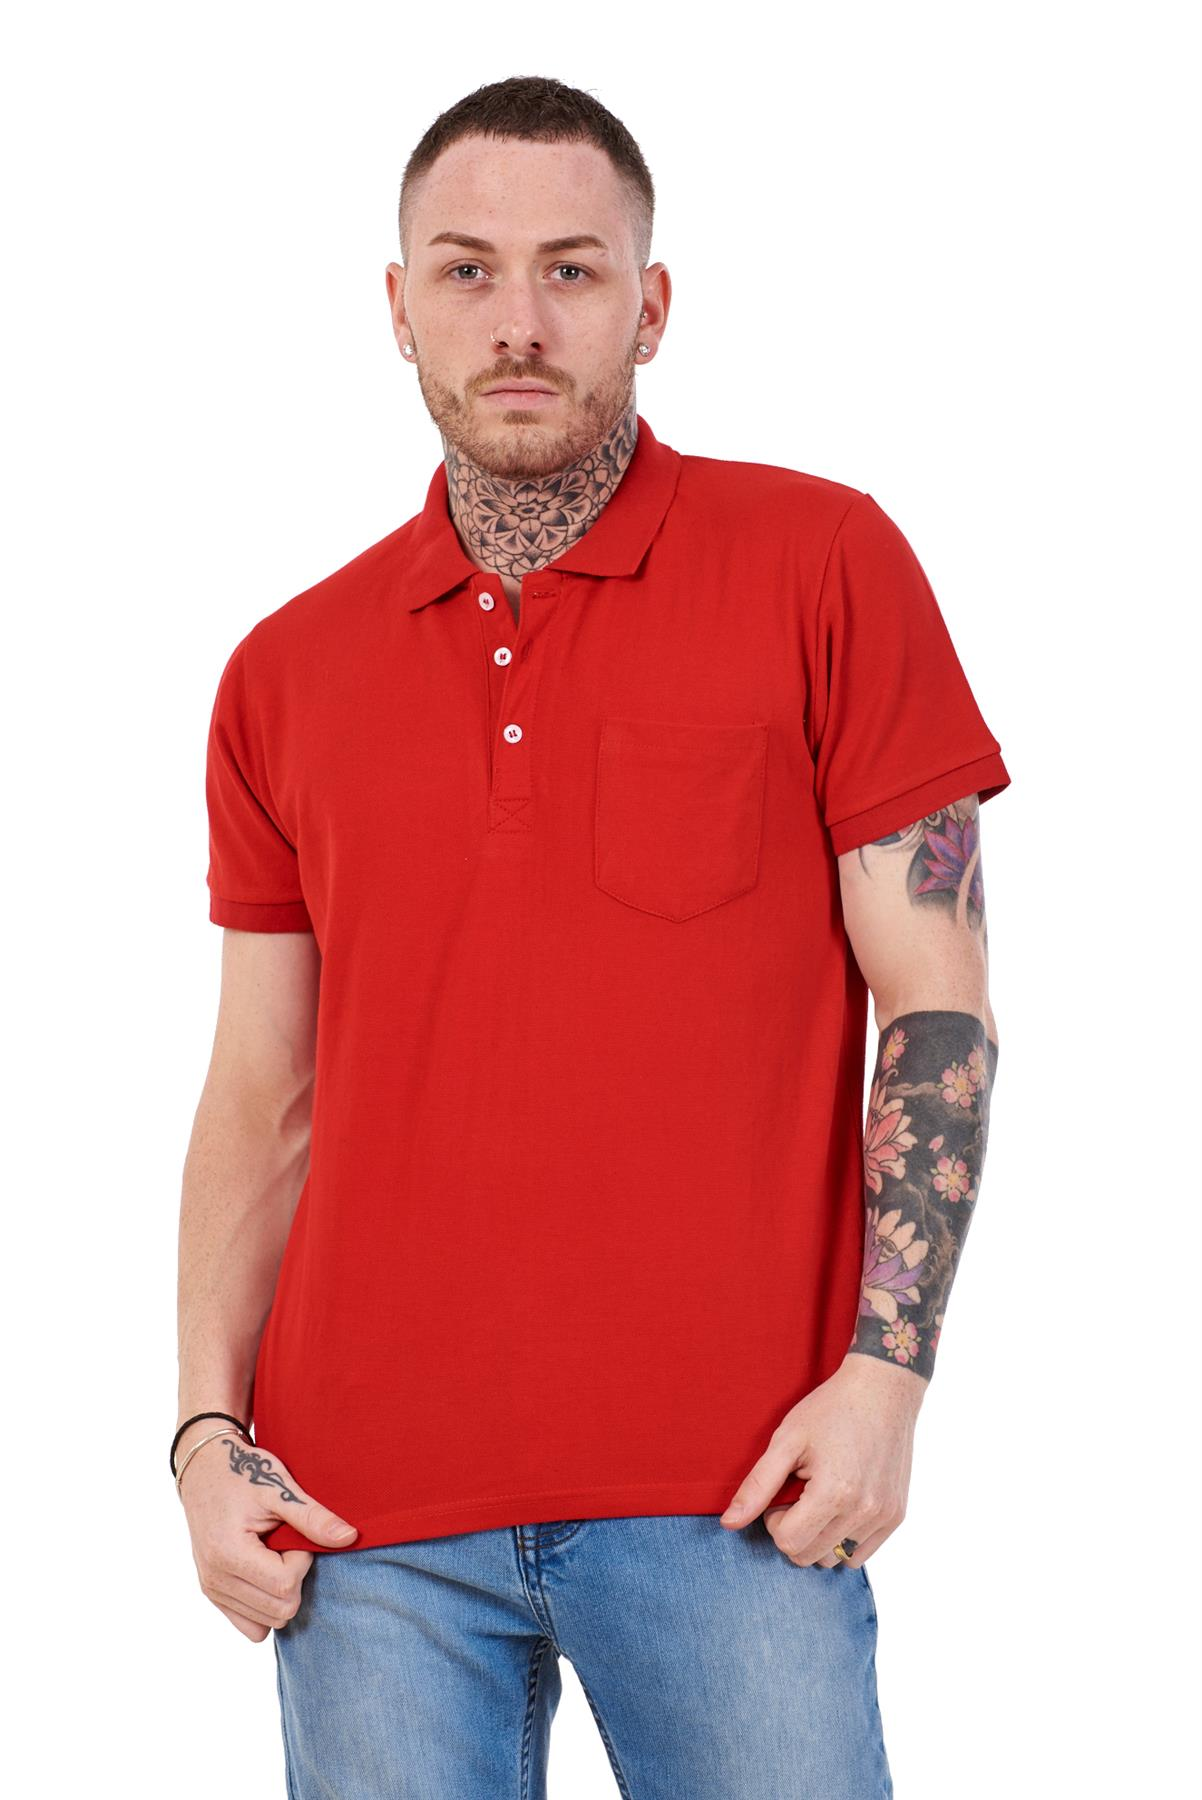 Mens-Cotton-T-Shirts-Regular-fit-Plain-Polo-Pocket-Casual-Formal-Shirt-Top-M-XXL thumbnail 24